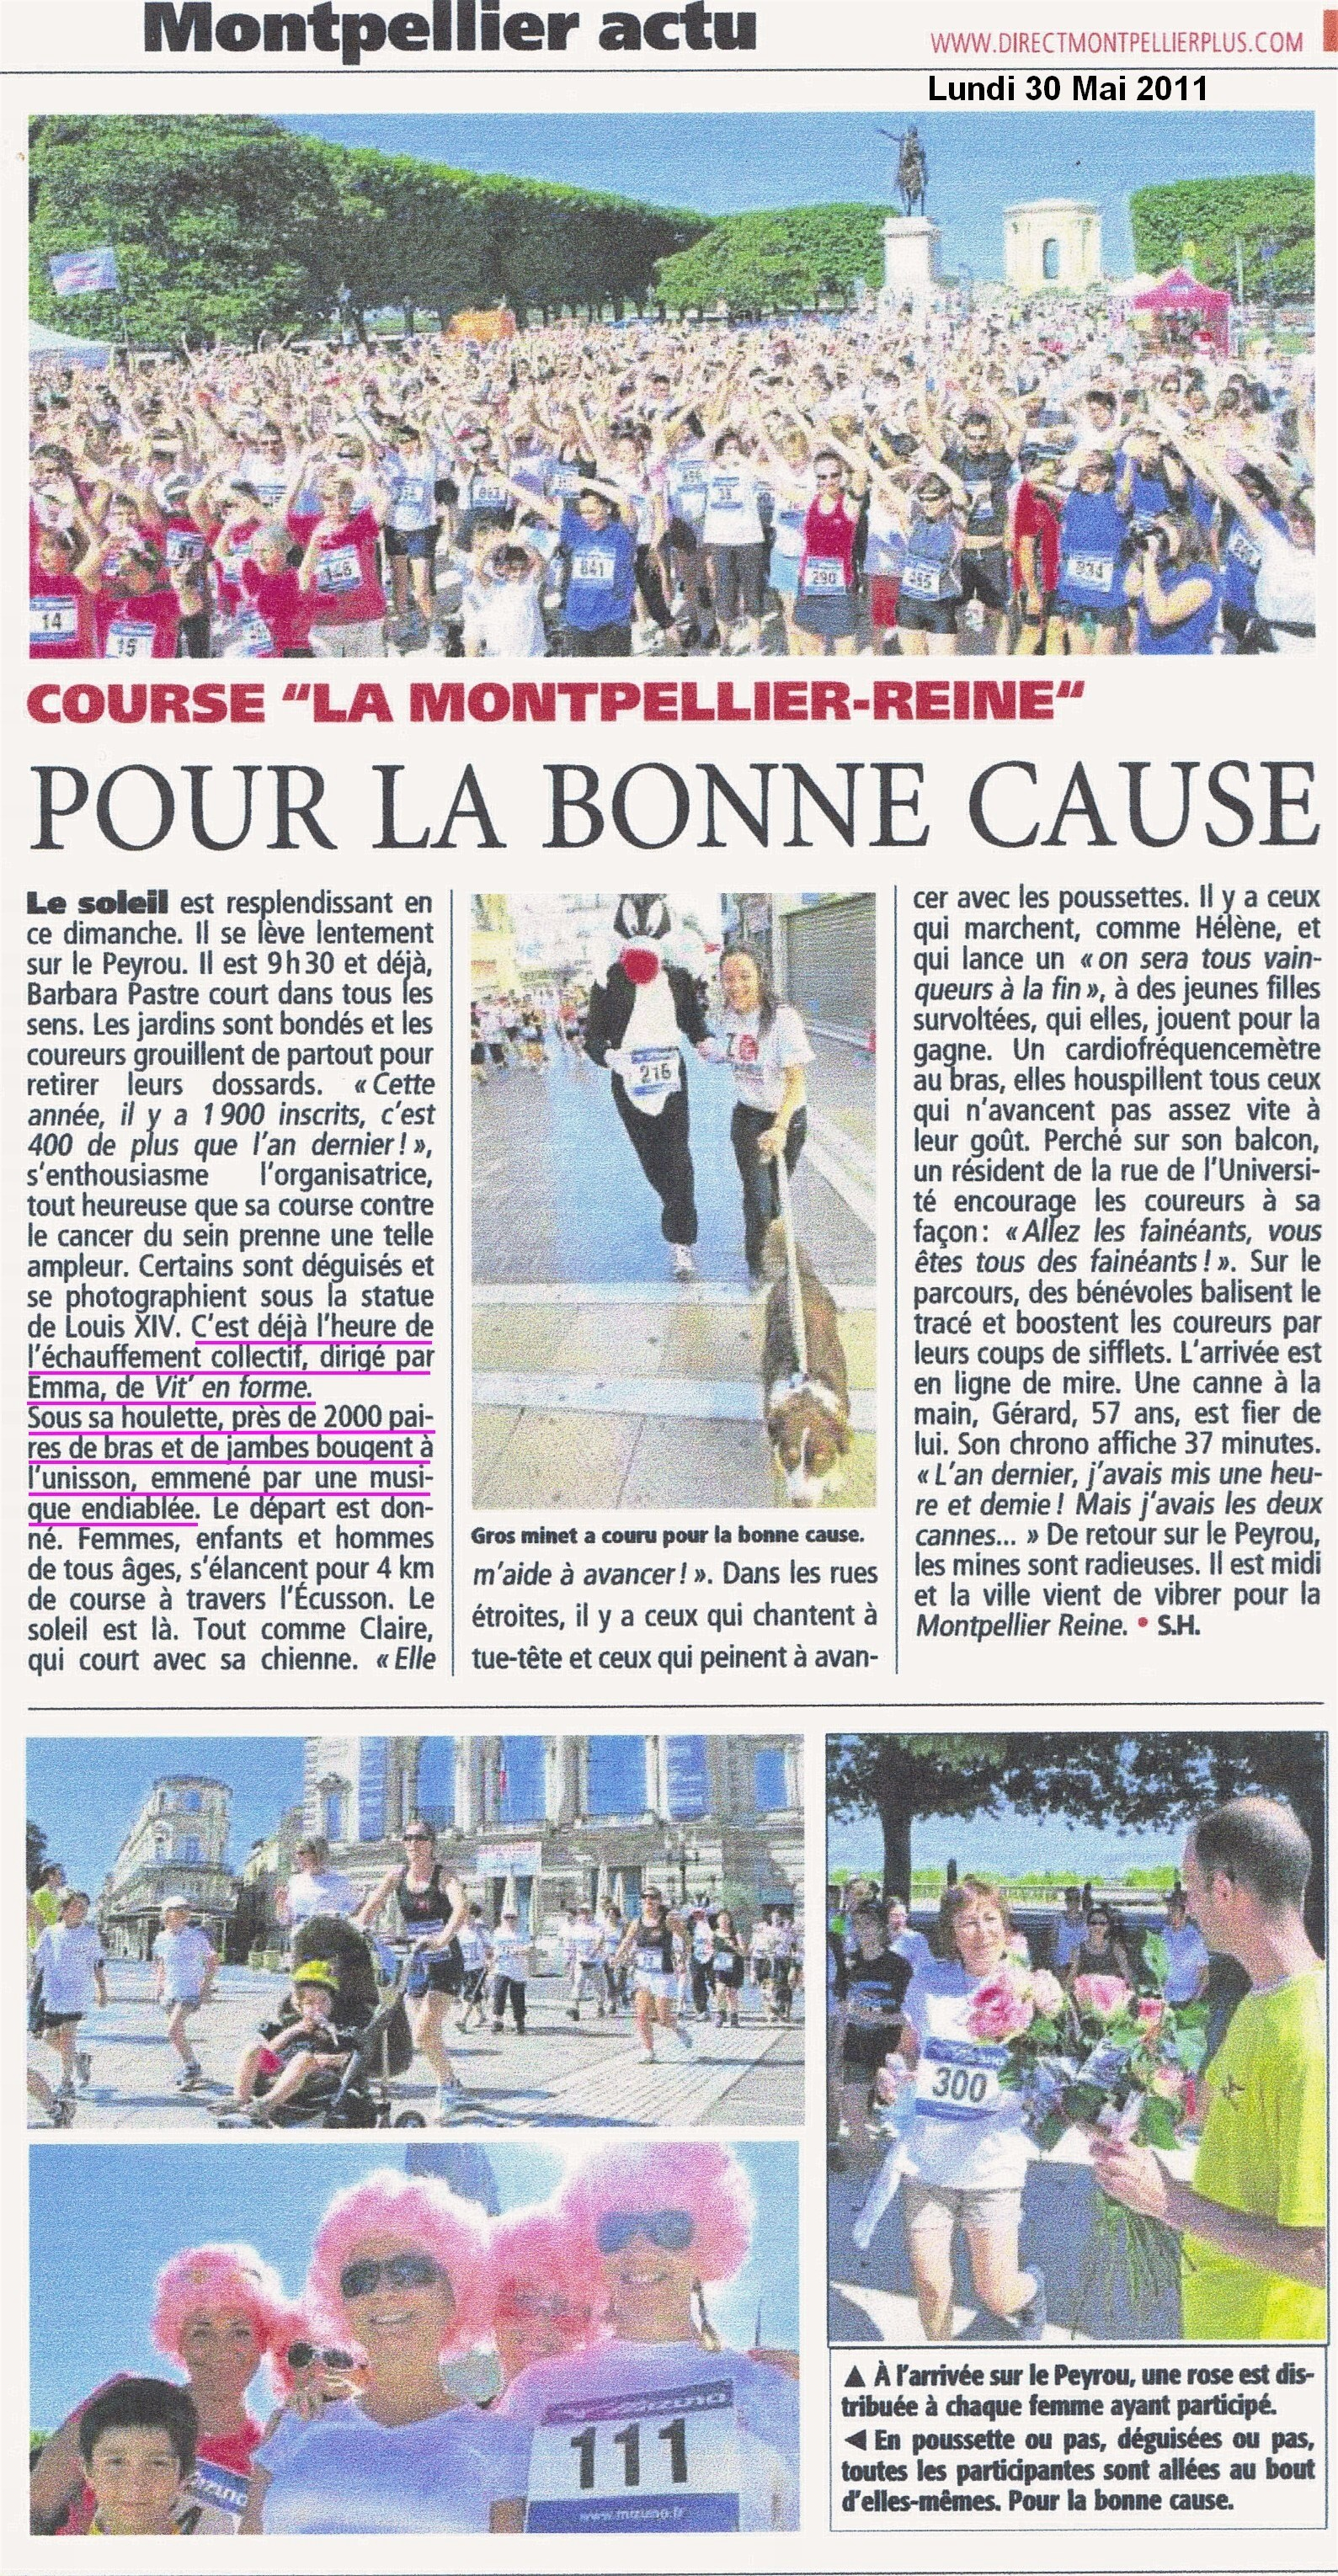 Article Montpellier Plus 30 Mai - VIT EN FORME